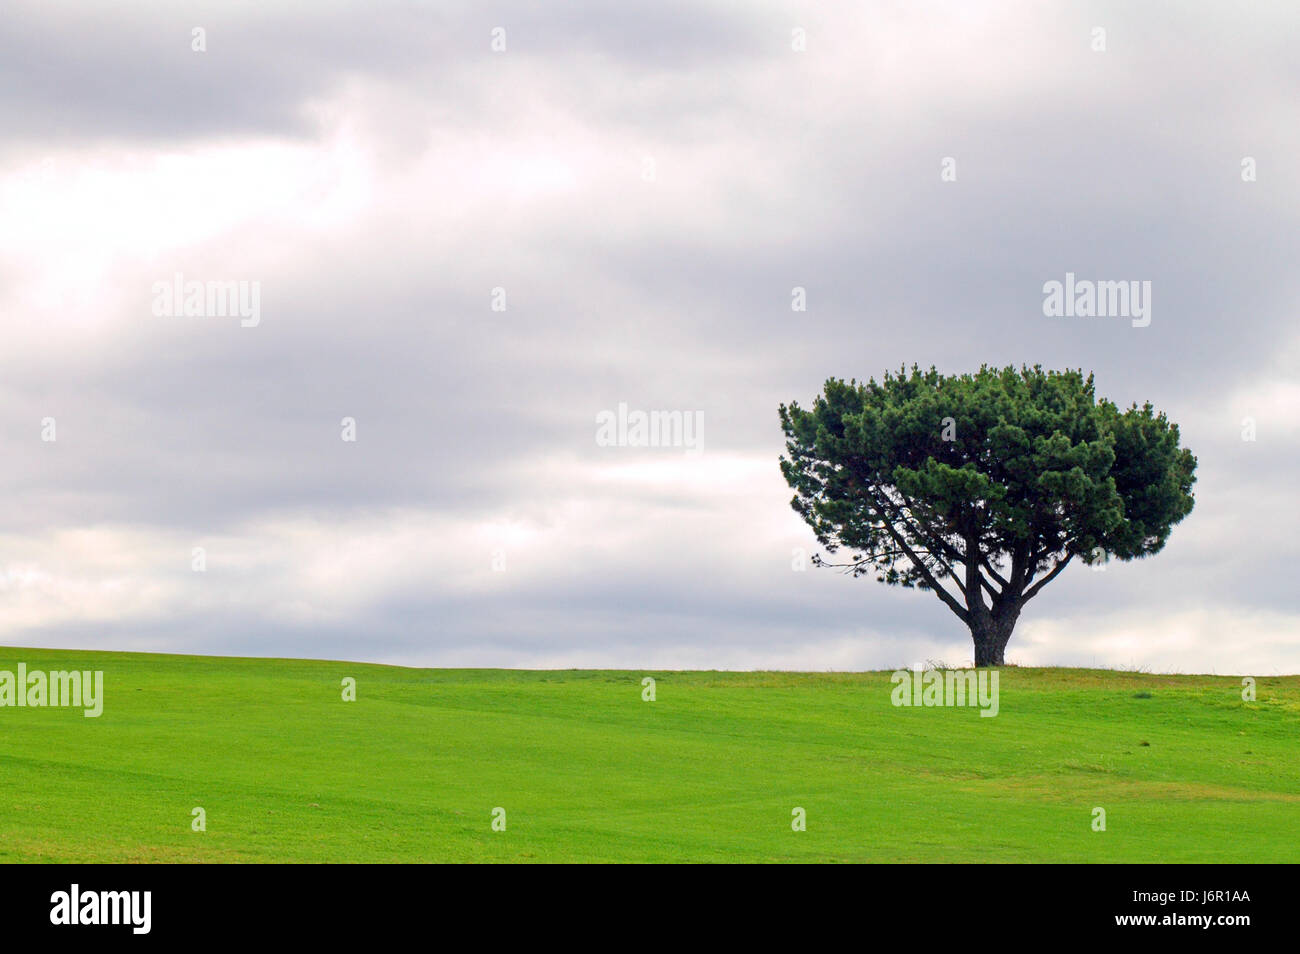 tree summer summerly solitary one country scenery countryside nature single - Stock Image